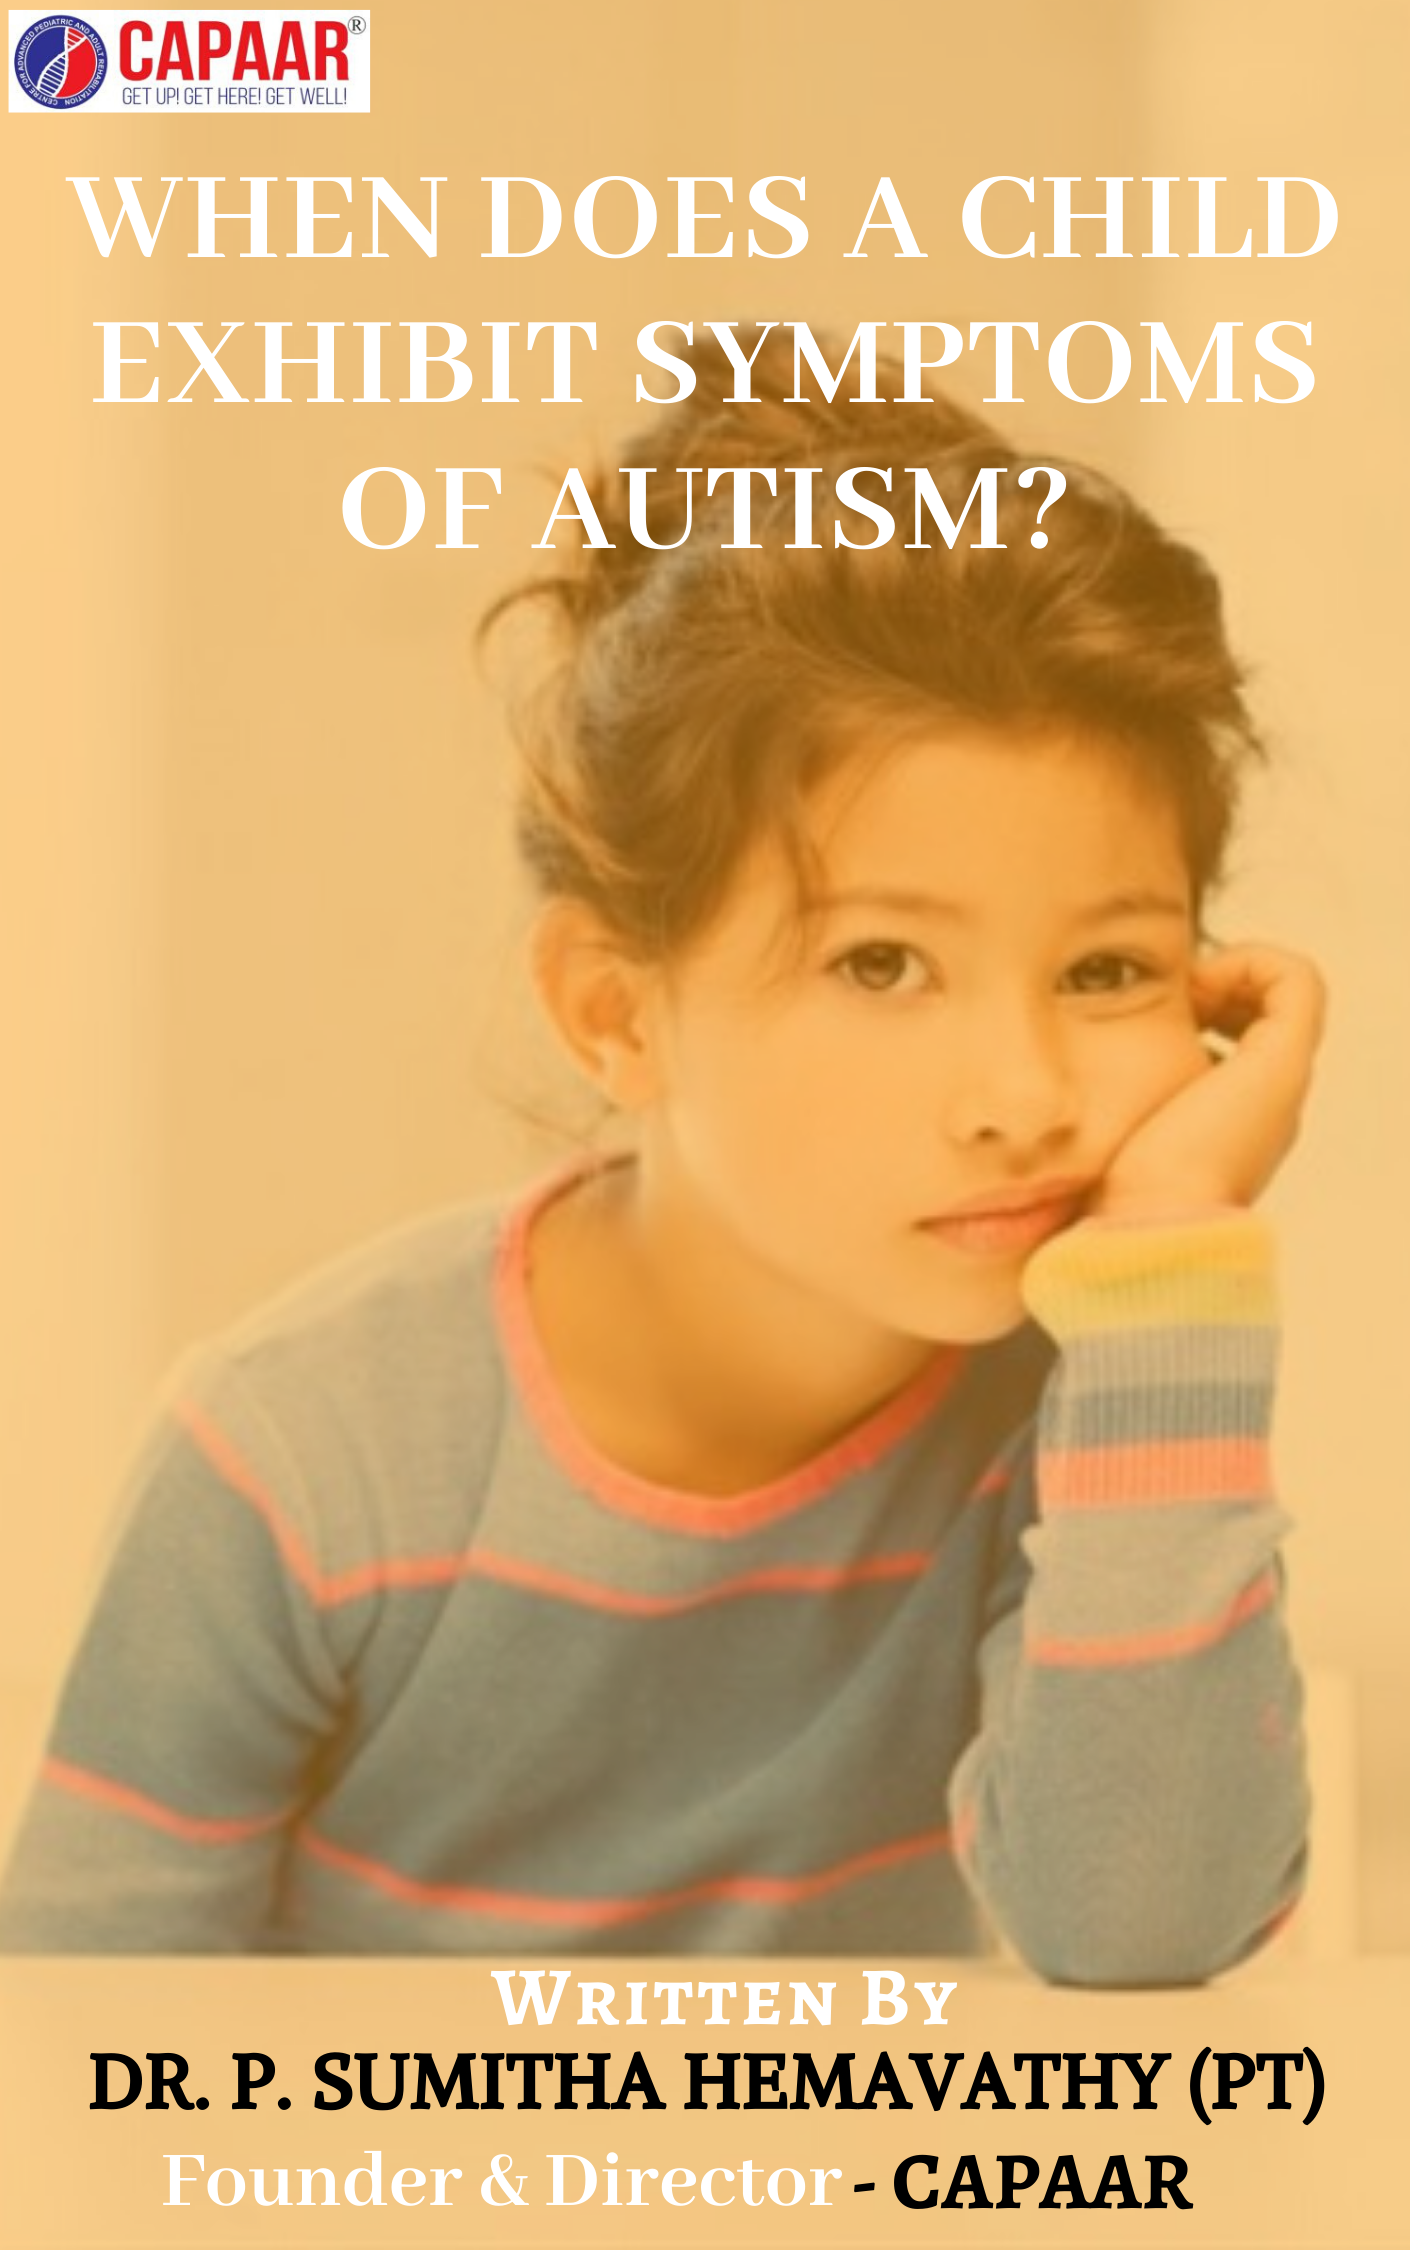 When does a child exhibit symptoms of Autism